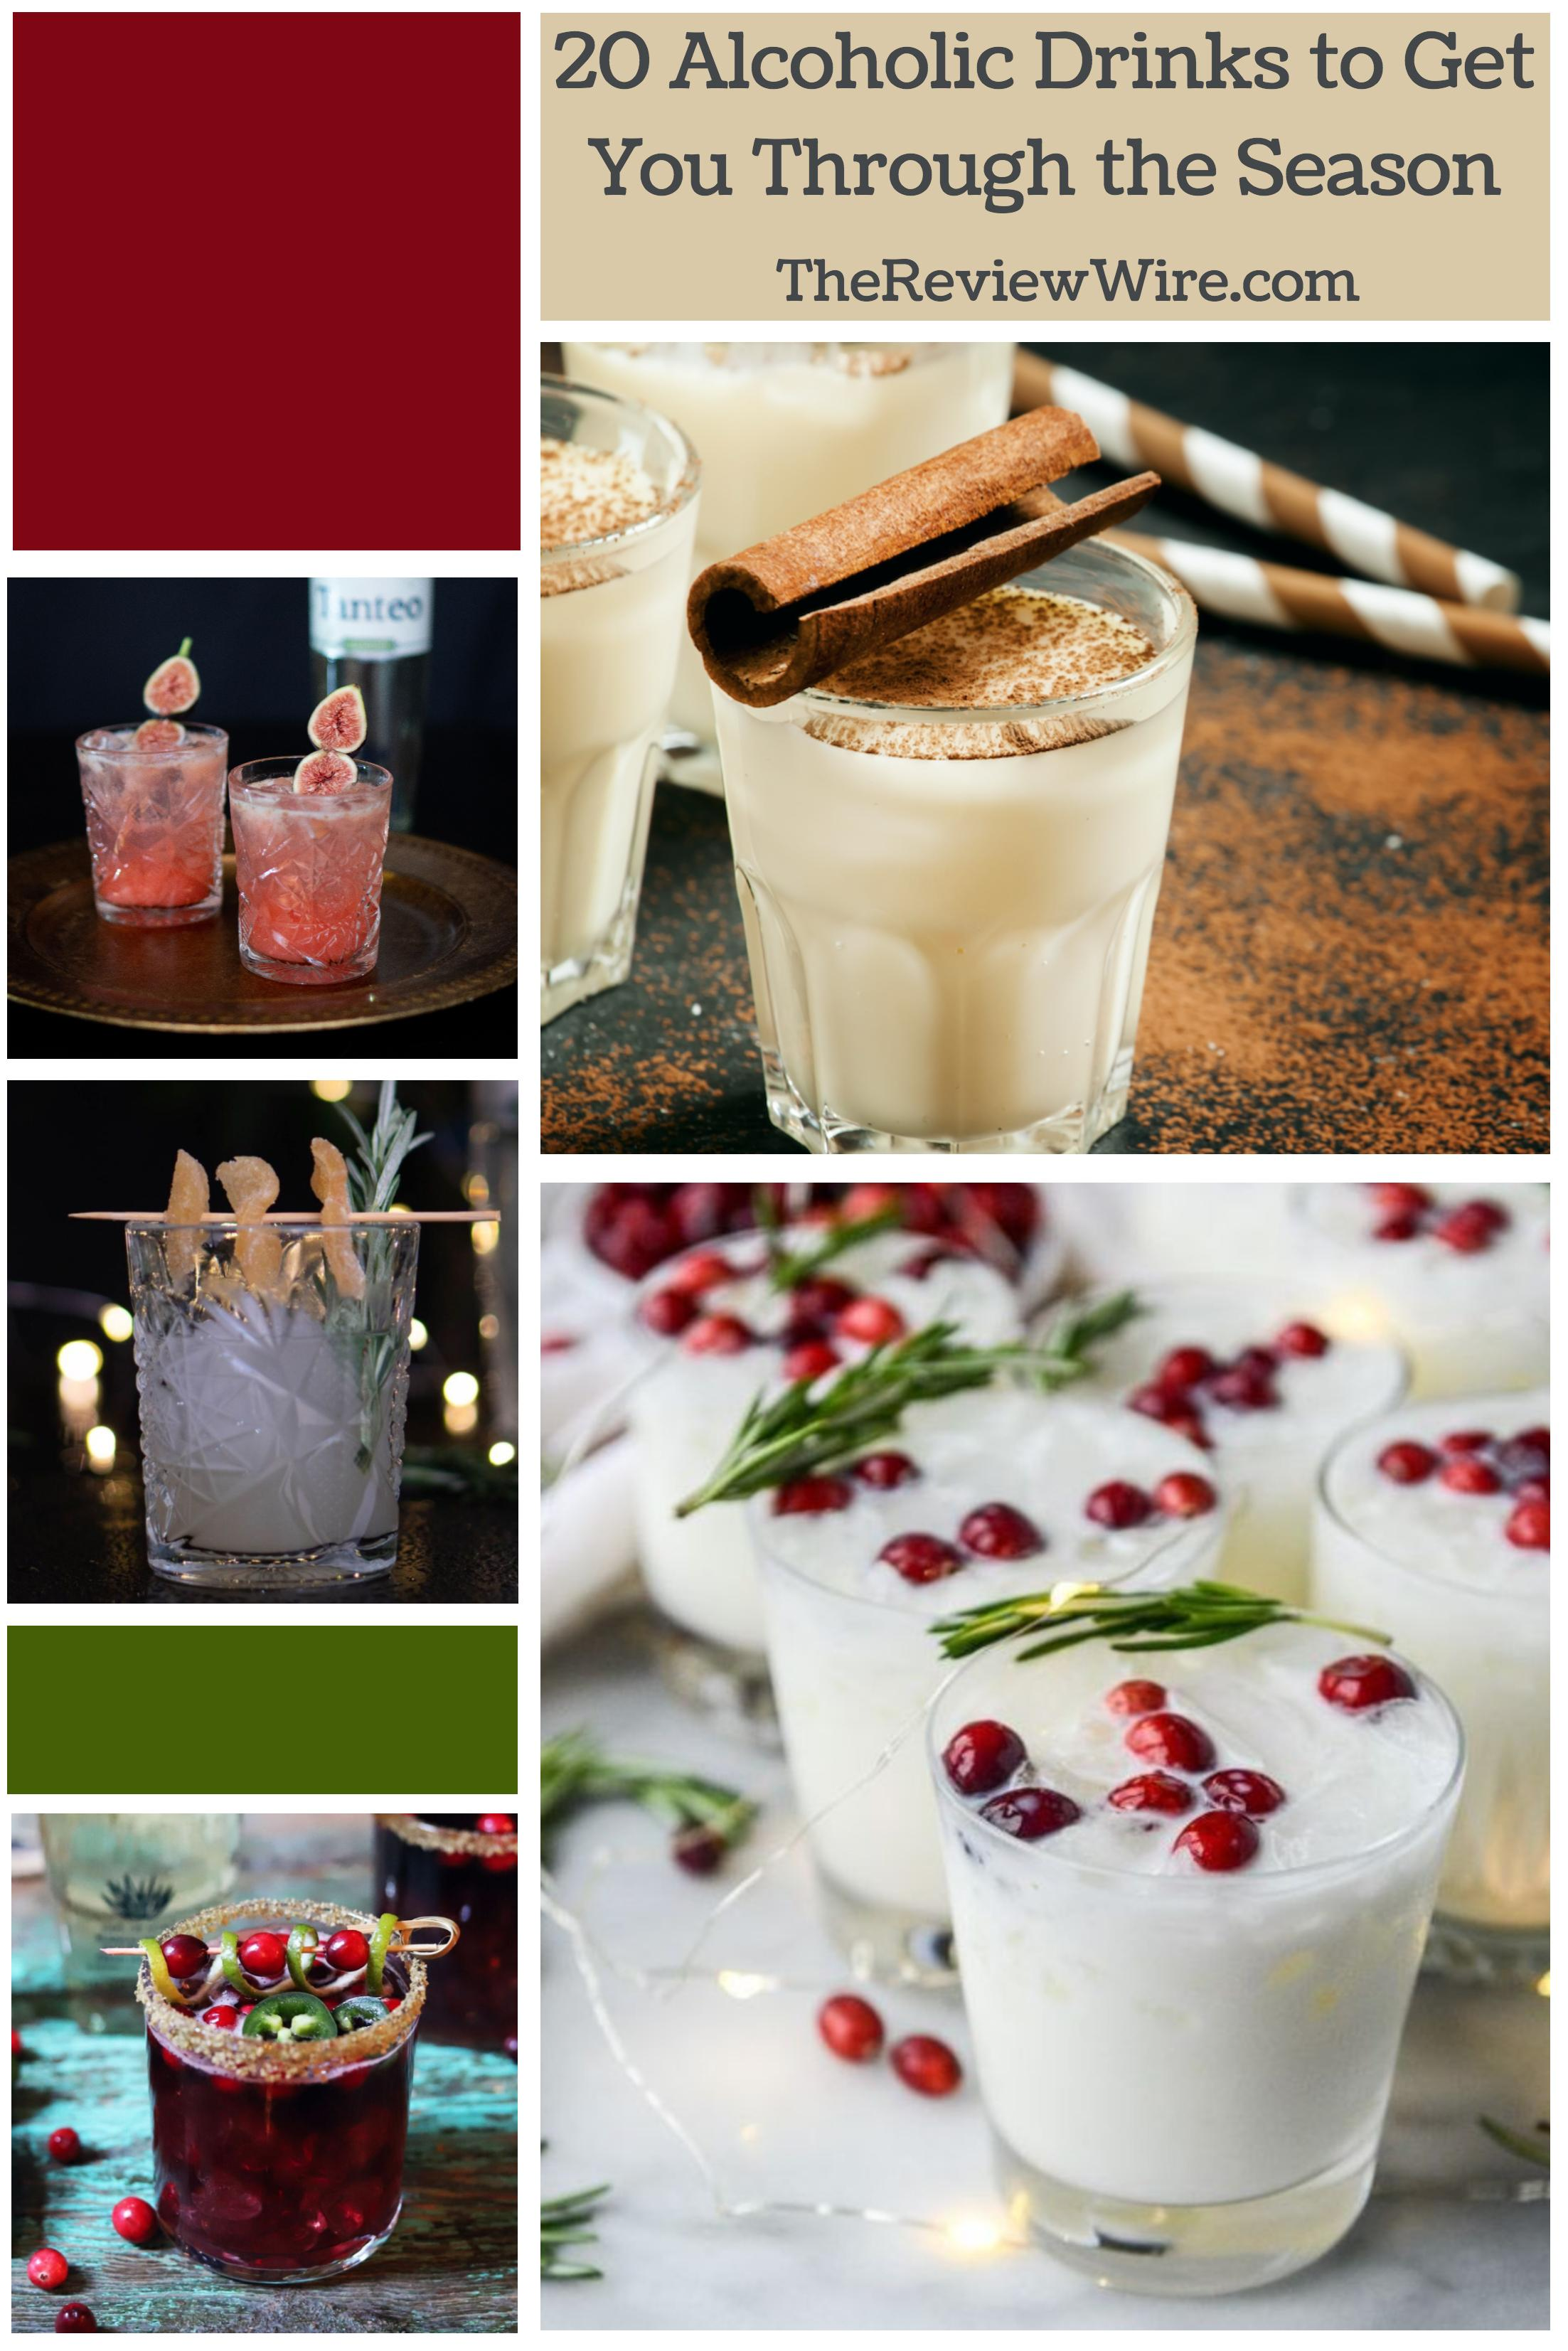 20 Alcoholic Drinks to Get You Through the Season (2)